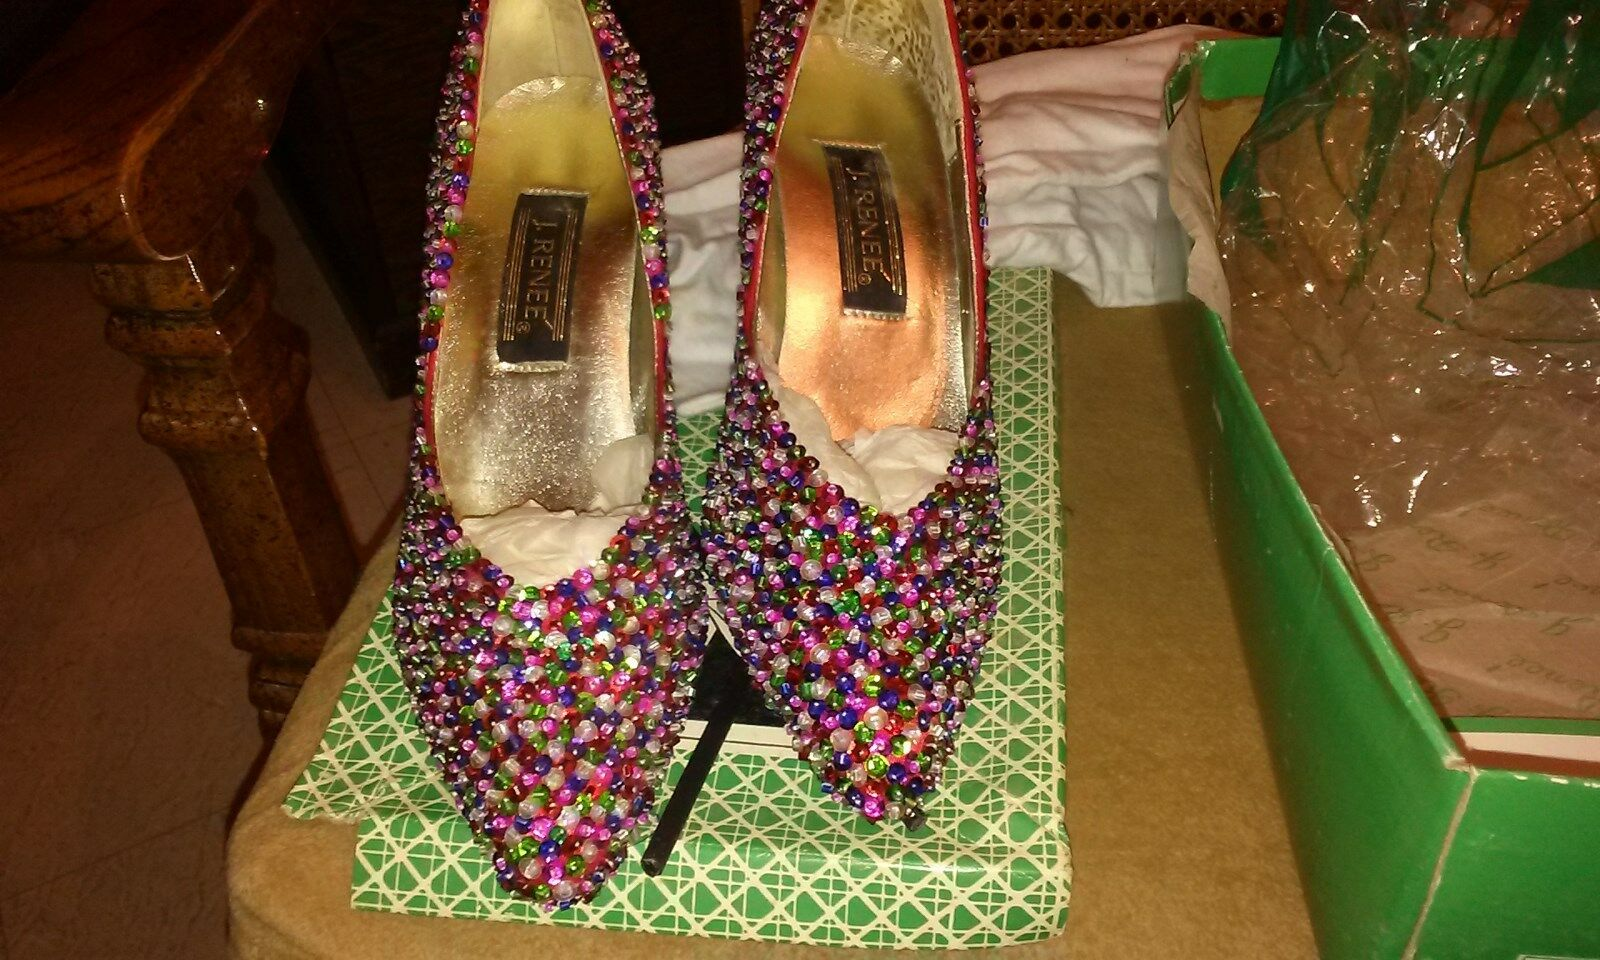 Woman Woman Woman nero 9(M) New J Renee  scarpe with Crystal Designs 35cd09